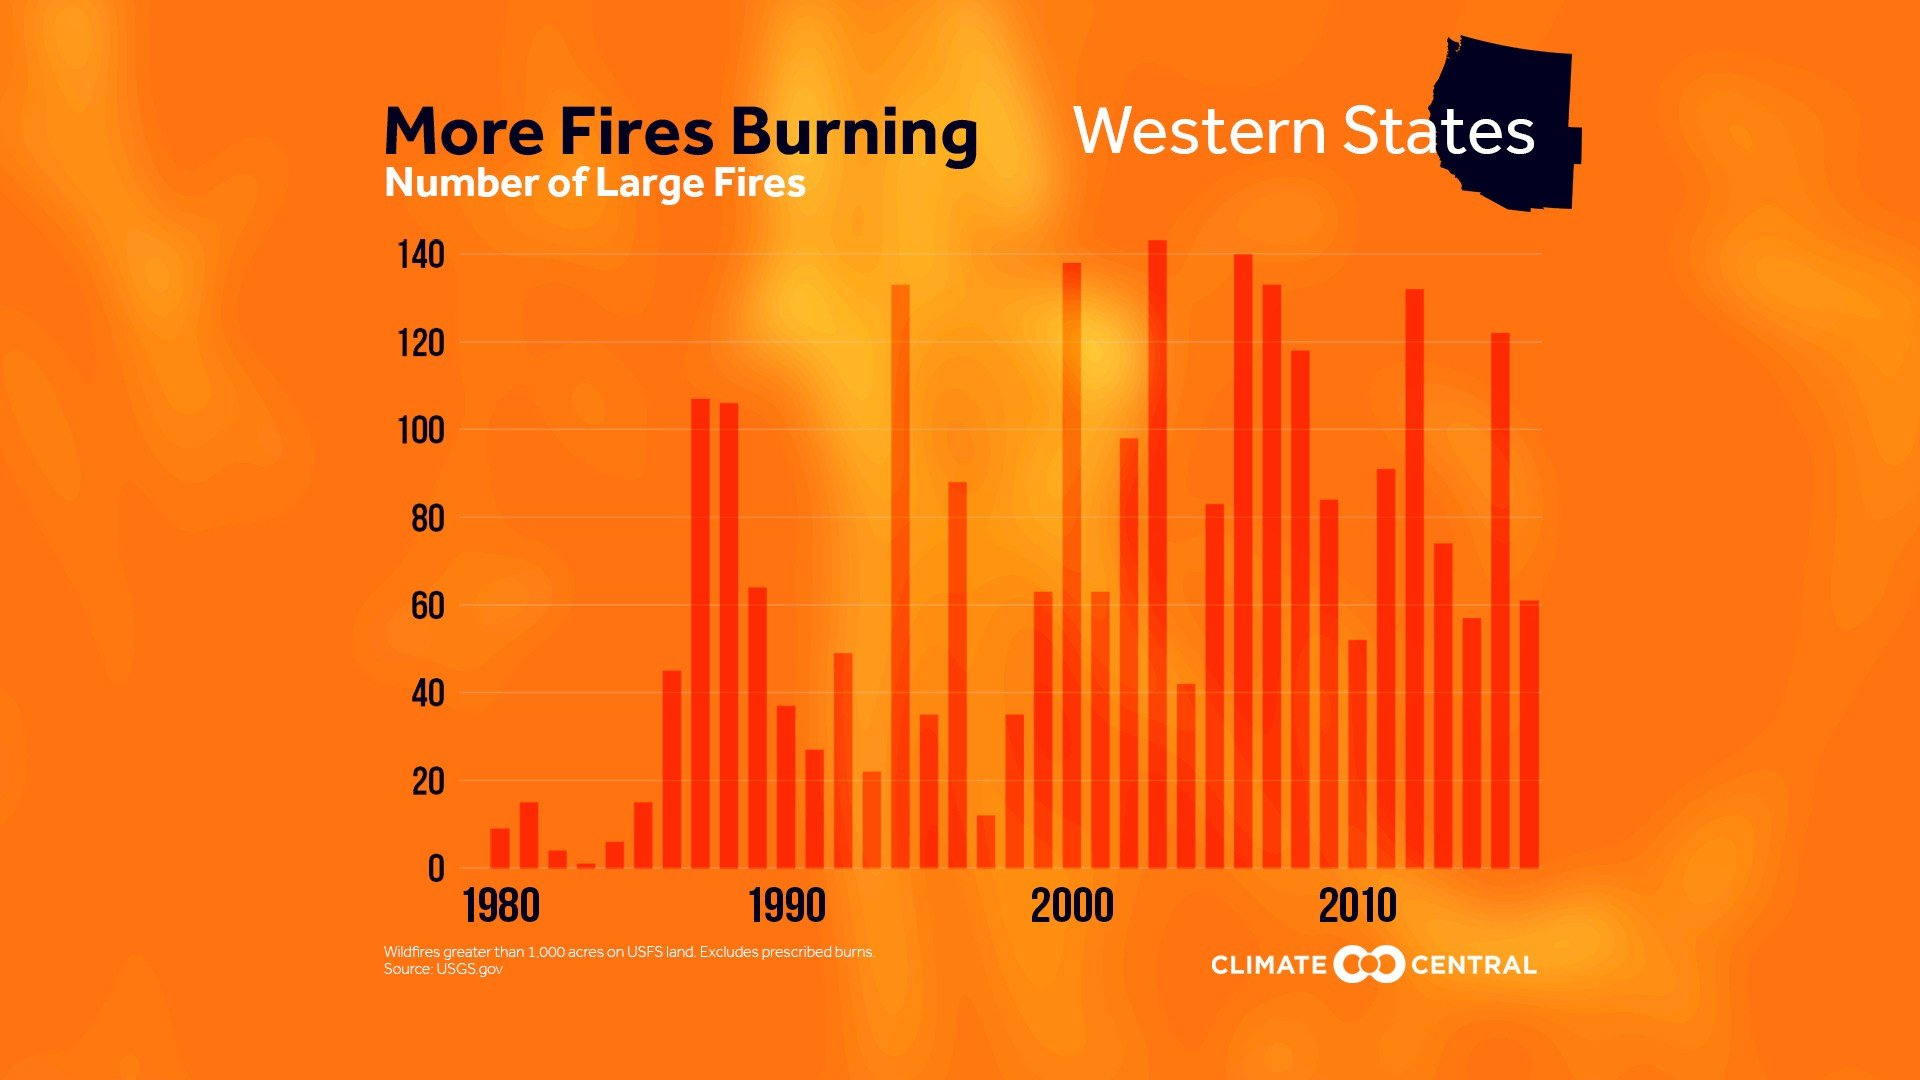 Number of wildfires is increasing